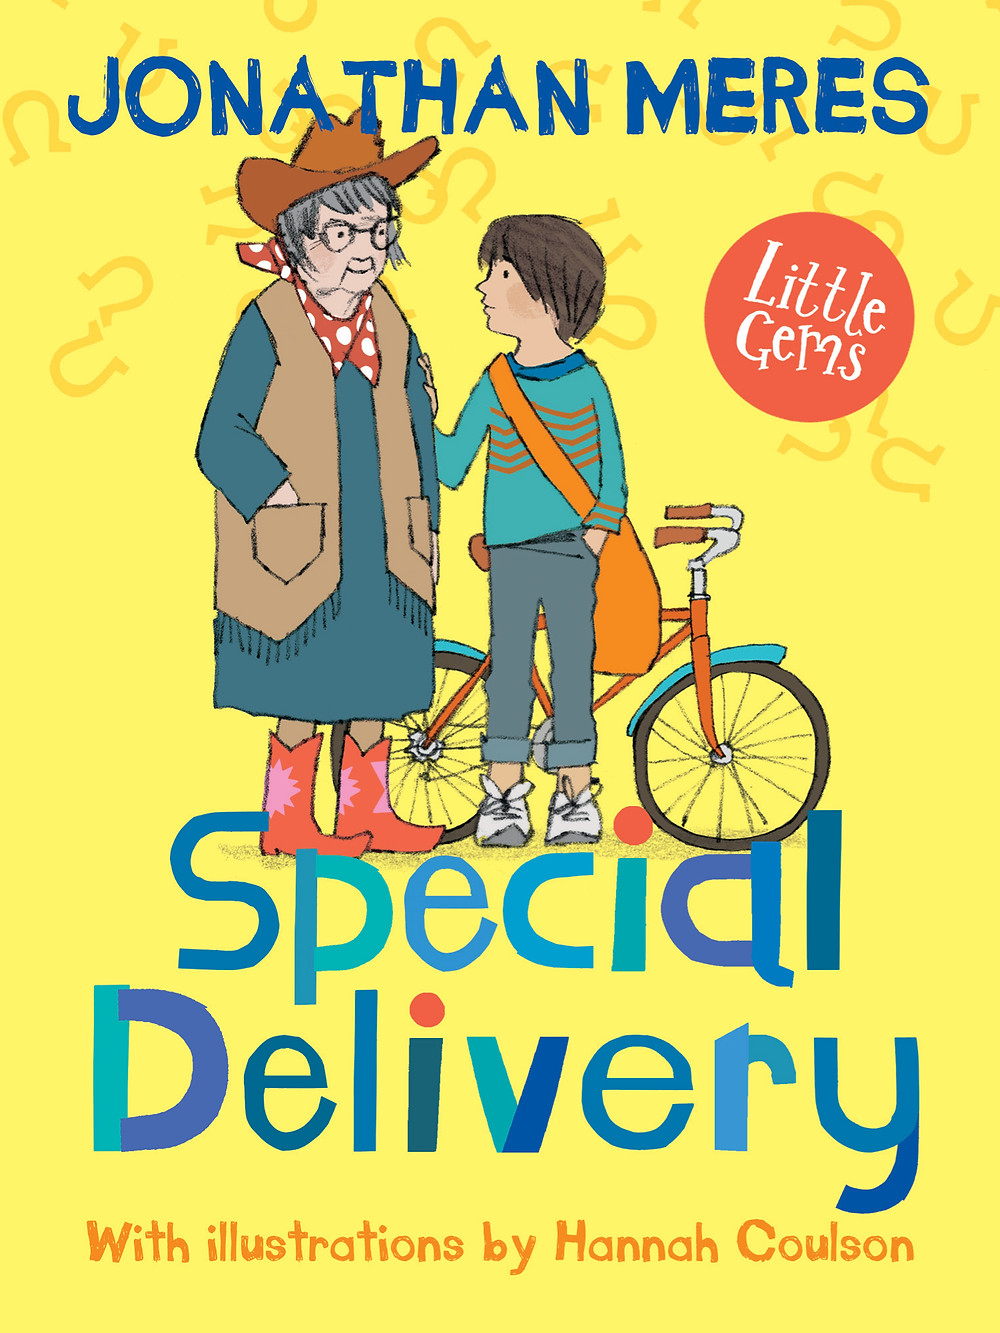 Special Delivery, a book for dyslexic children that explores an unlikely friendship between a boy and his elderly neighbour